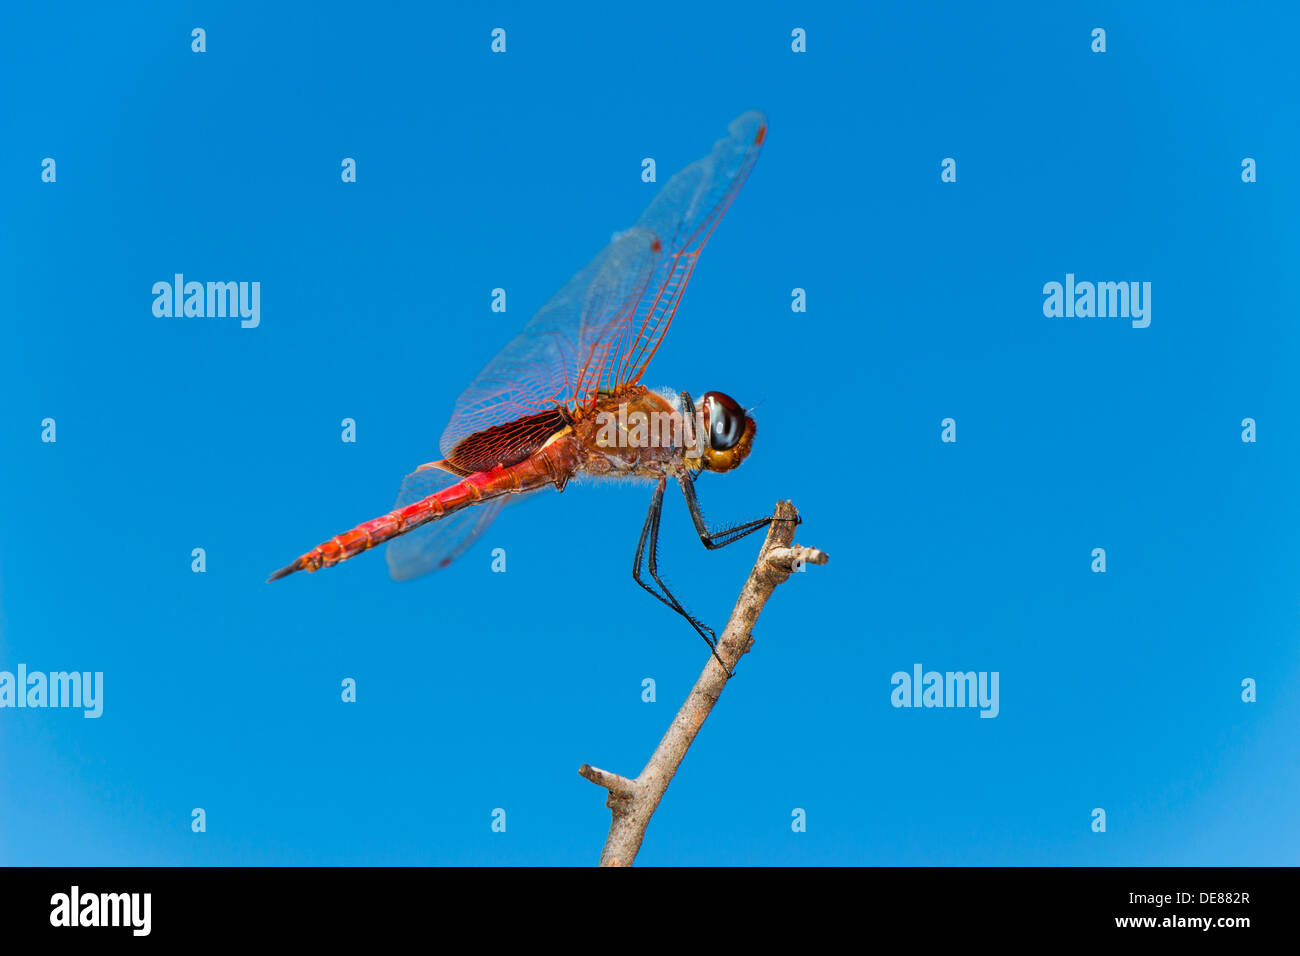 Side view of a Red Dragonfly perched on a branch against a blue sky background Stock Photo